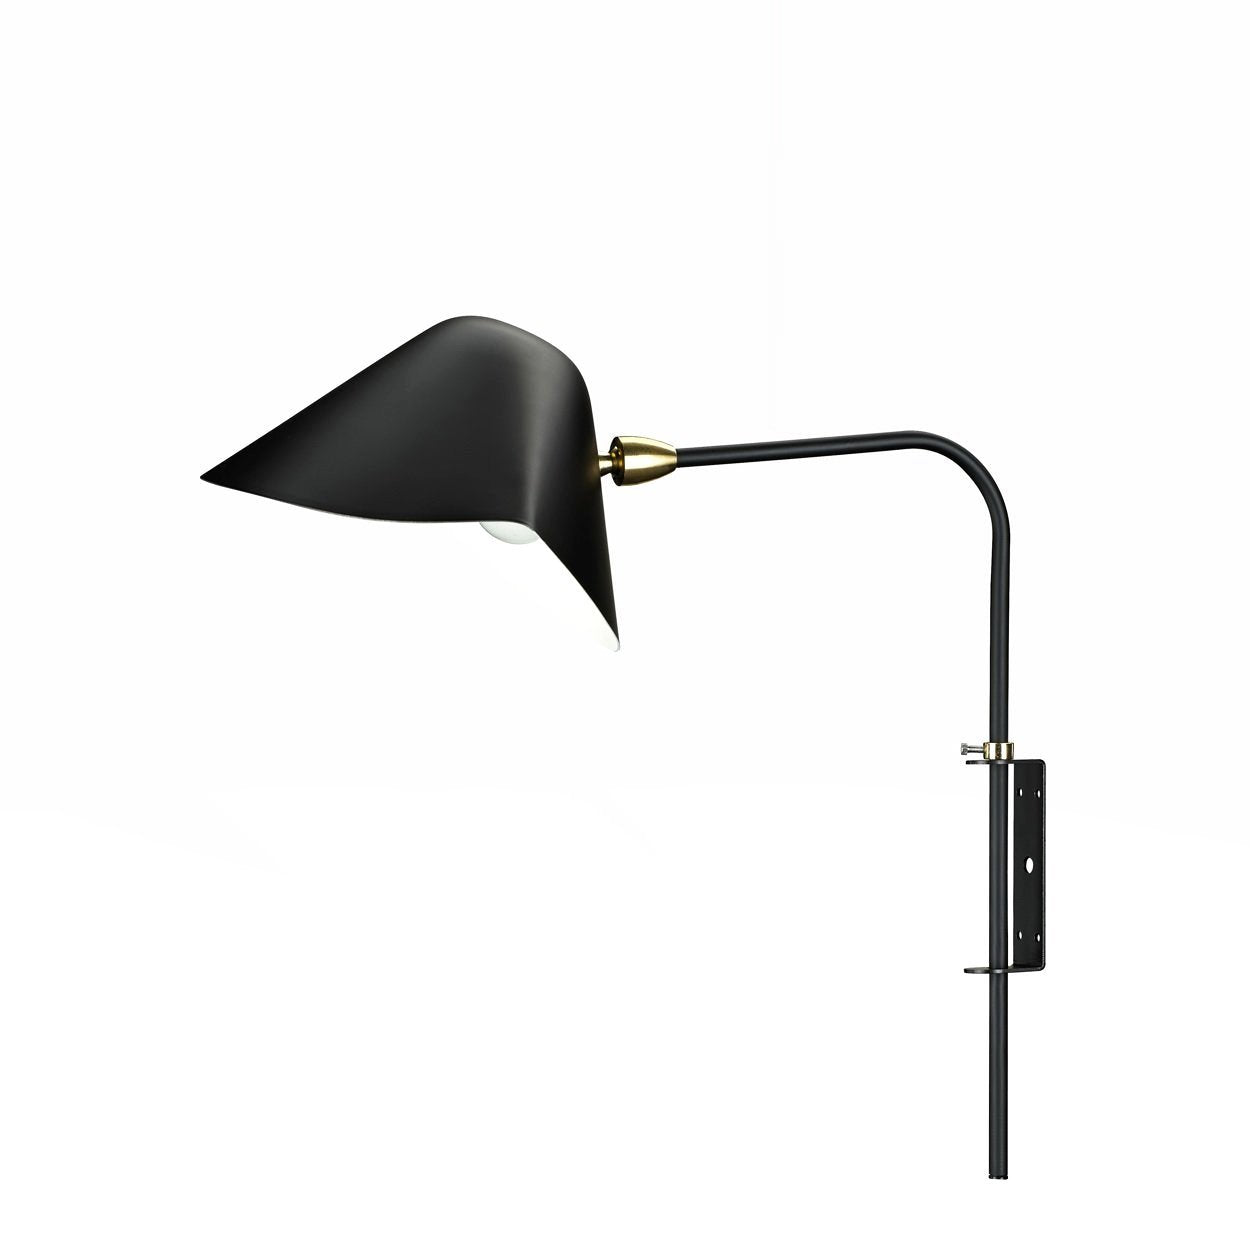 [LBW059BLK] Enok black wall sconce